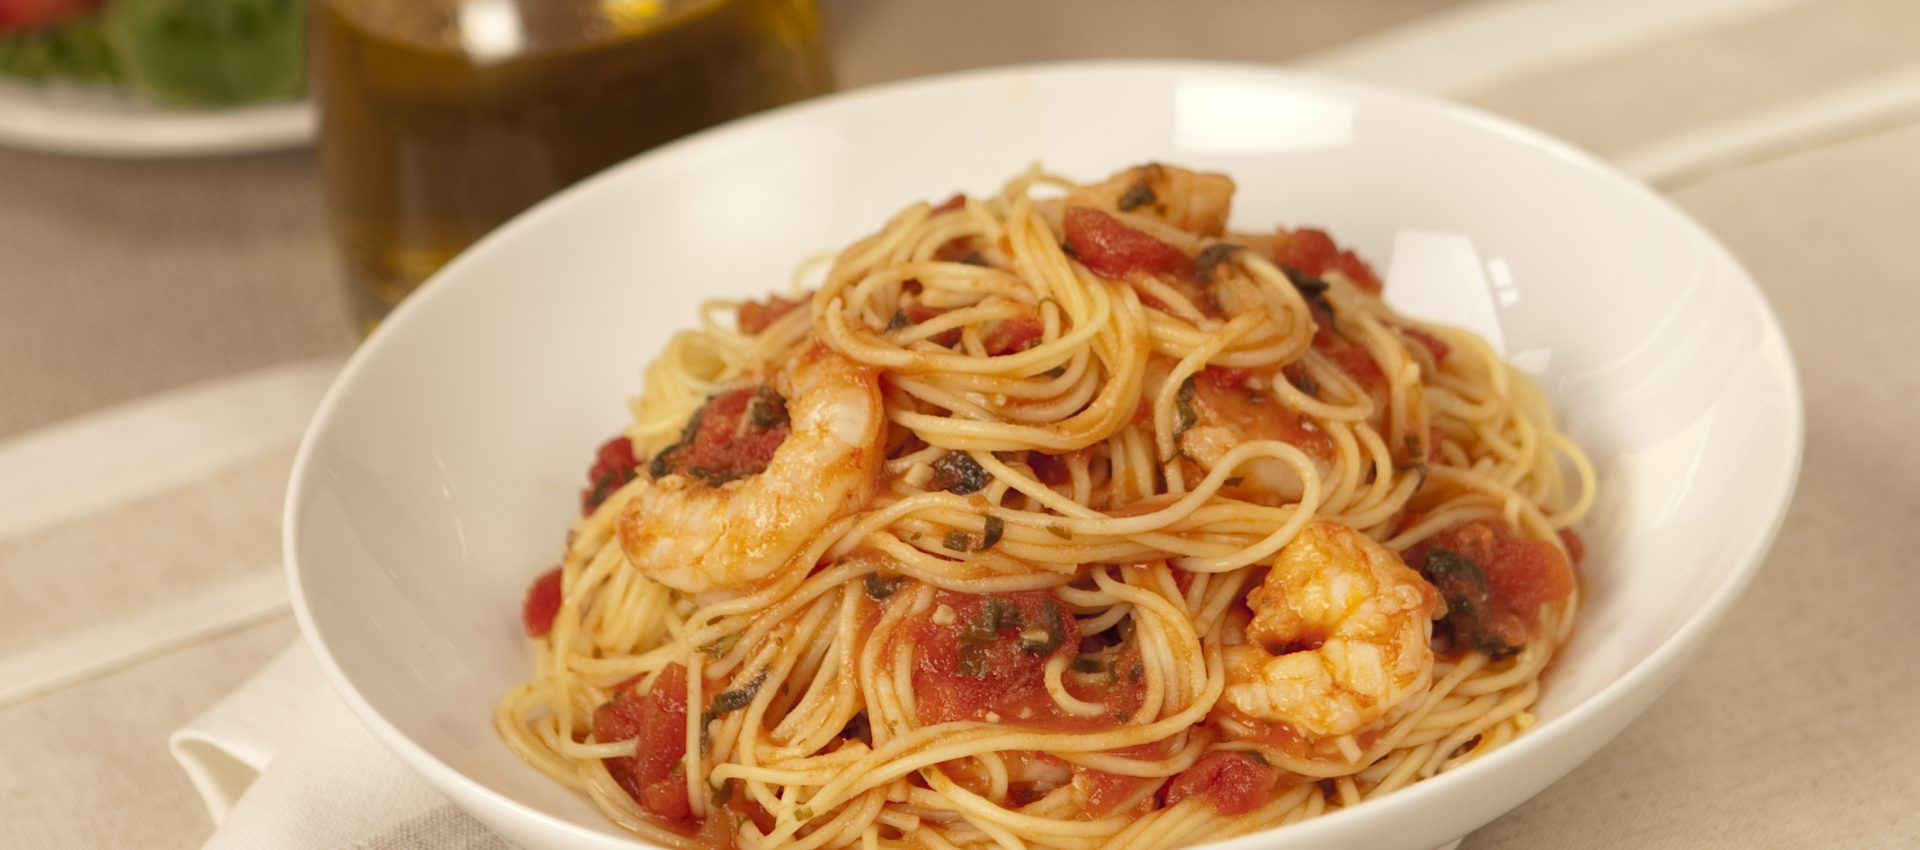 This recipe pairs shrimp with tomatoes and fresh basil to make a